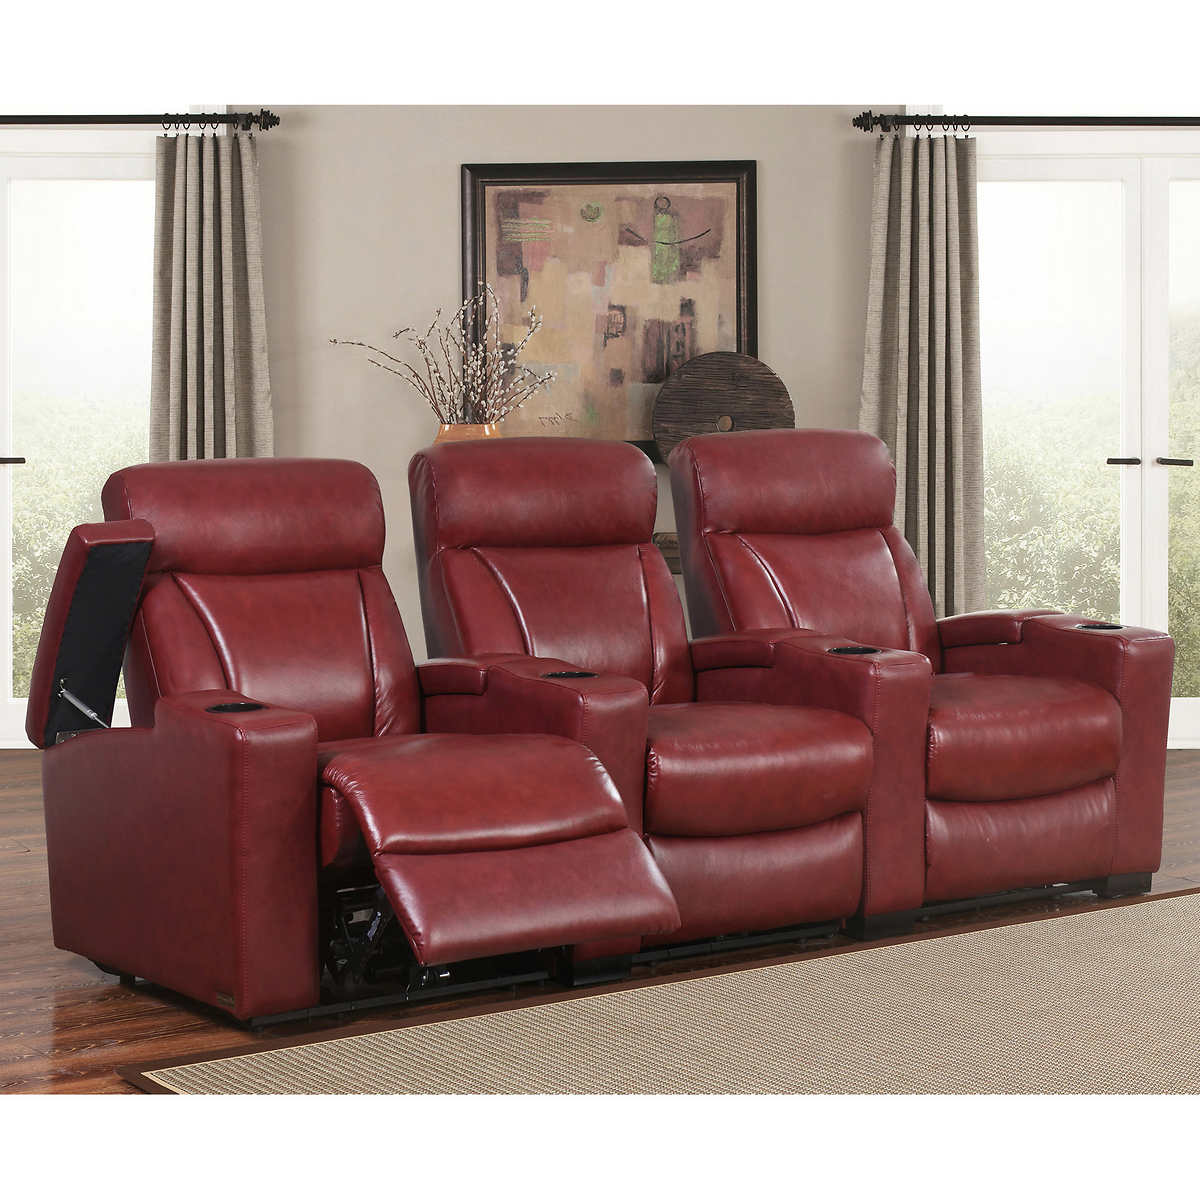 Red Leather Reclining Chair recliners | costco